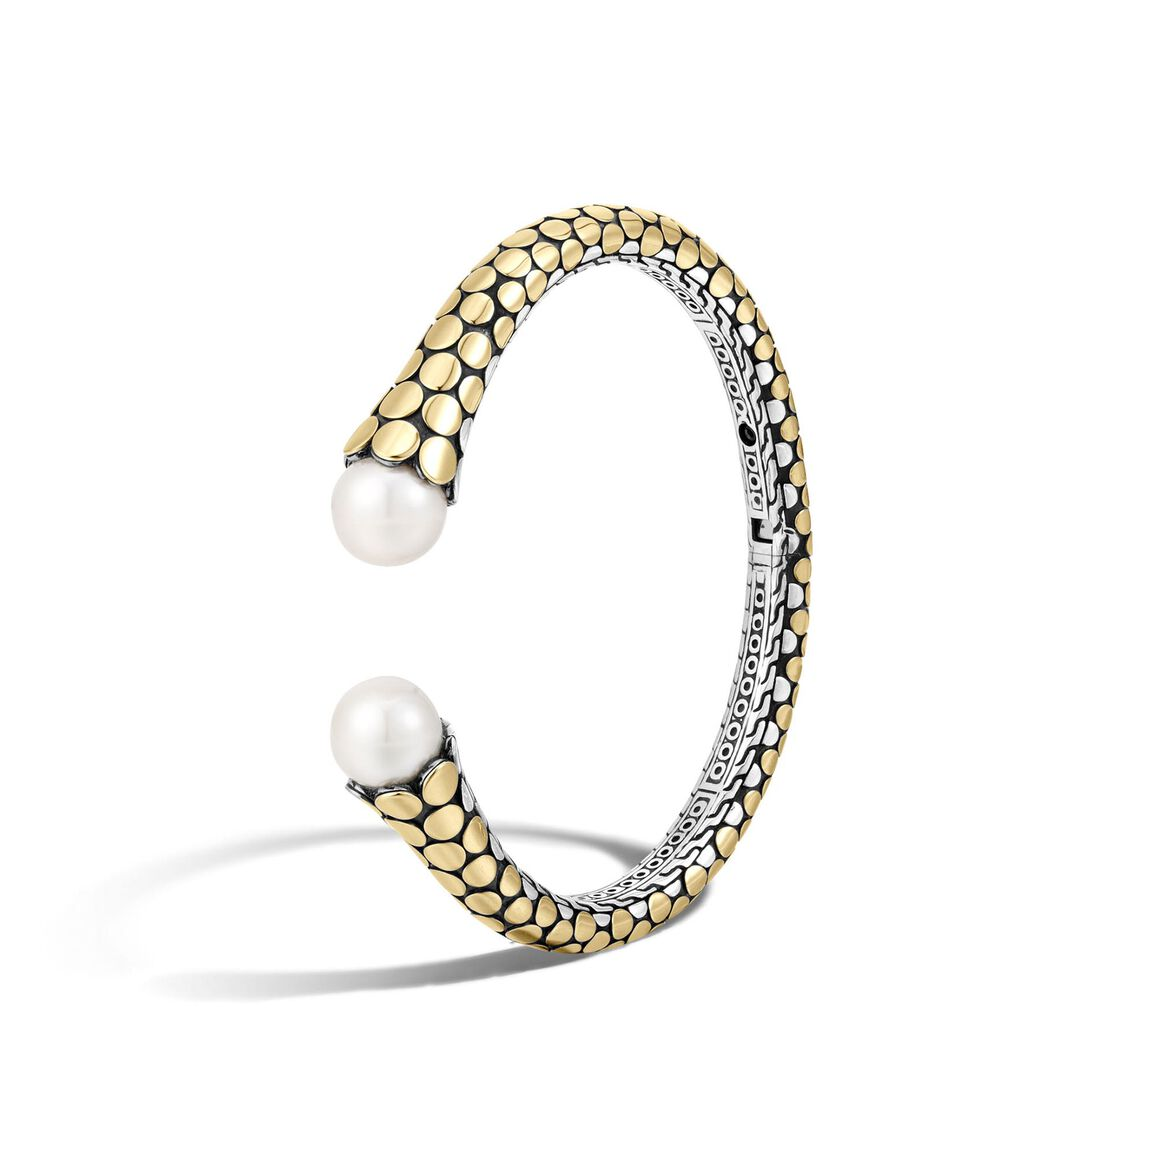 Dot Kick Cuff in Silver and 18K Gold with 11MM Pearl